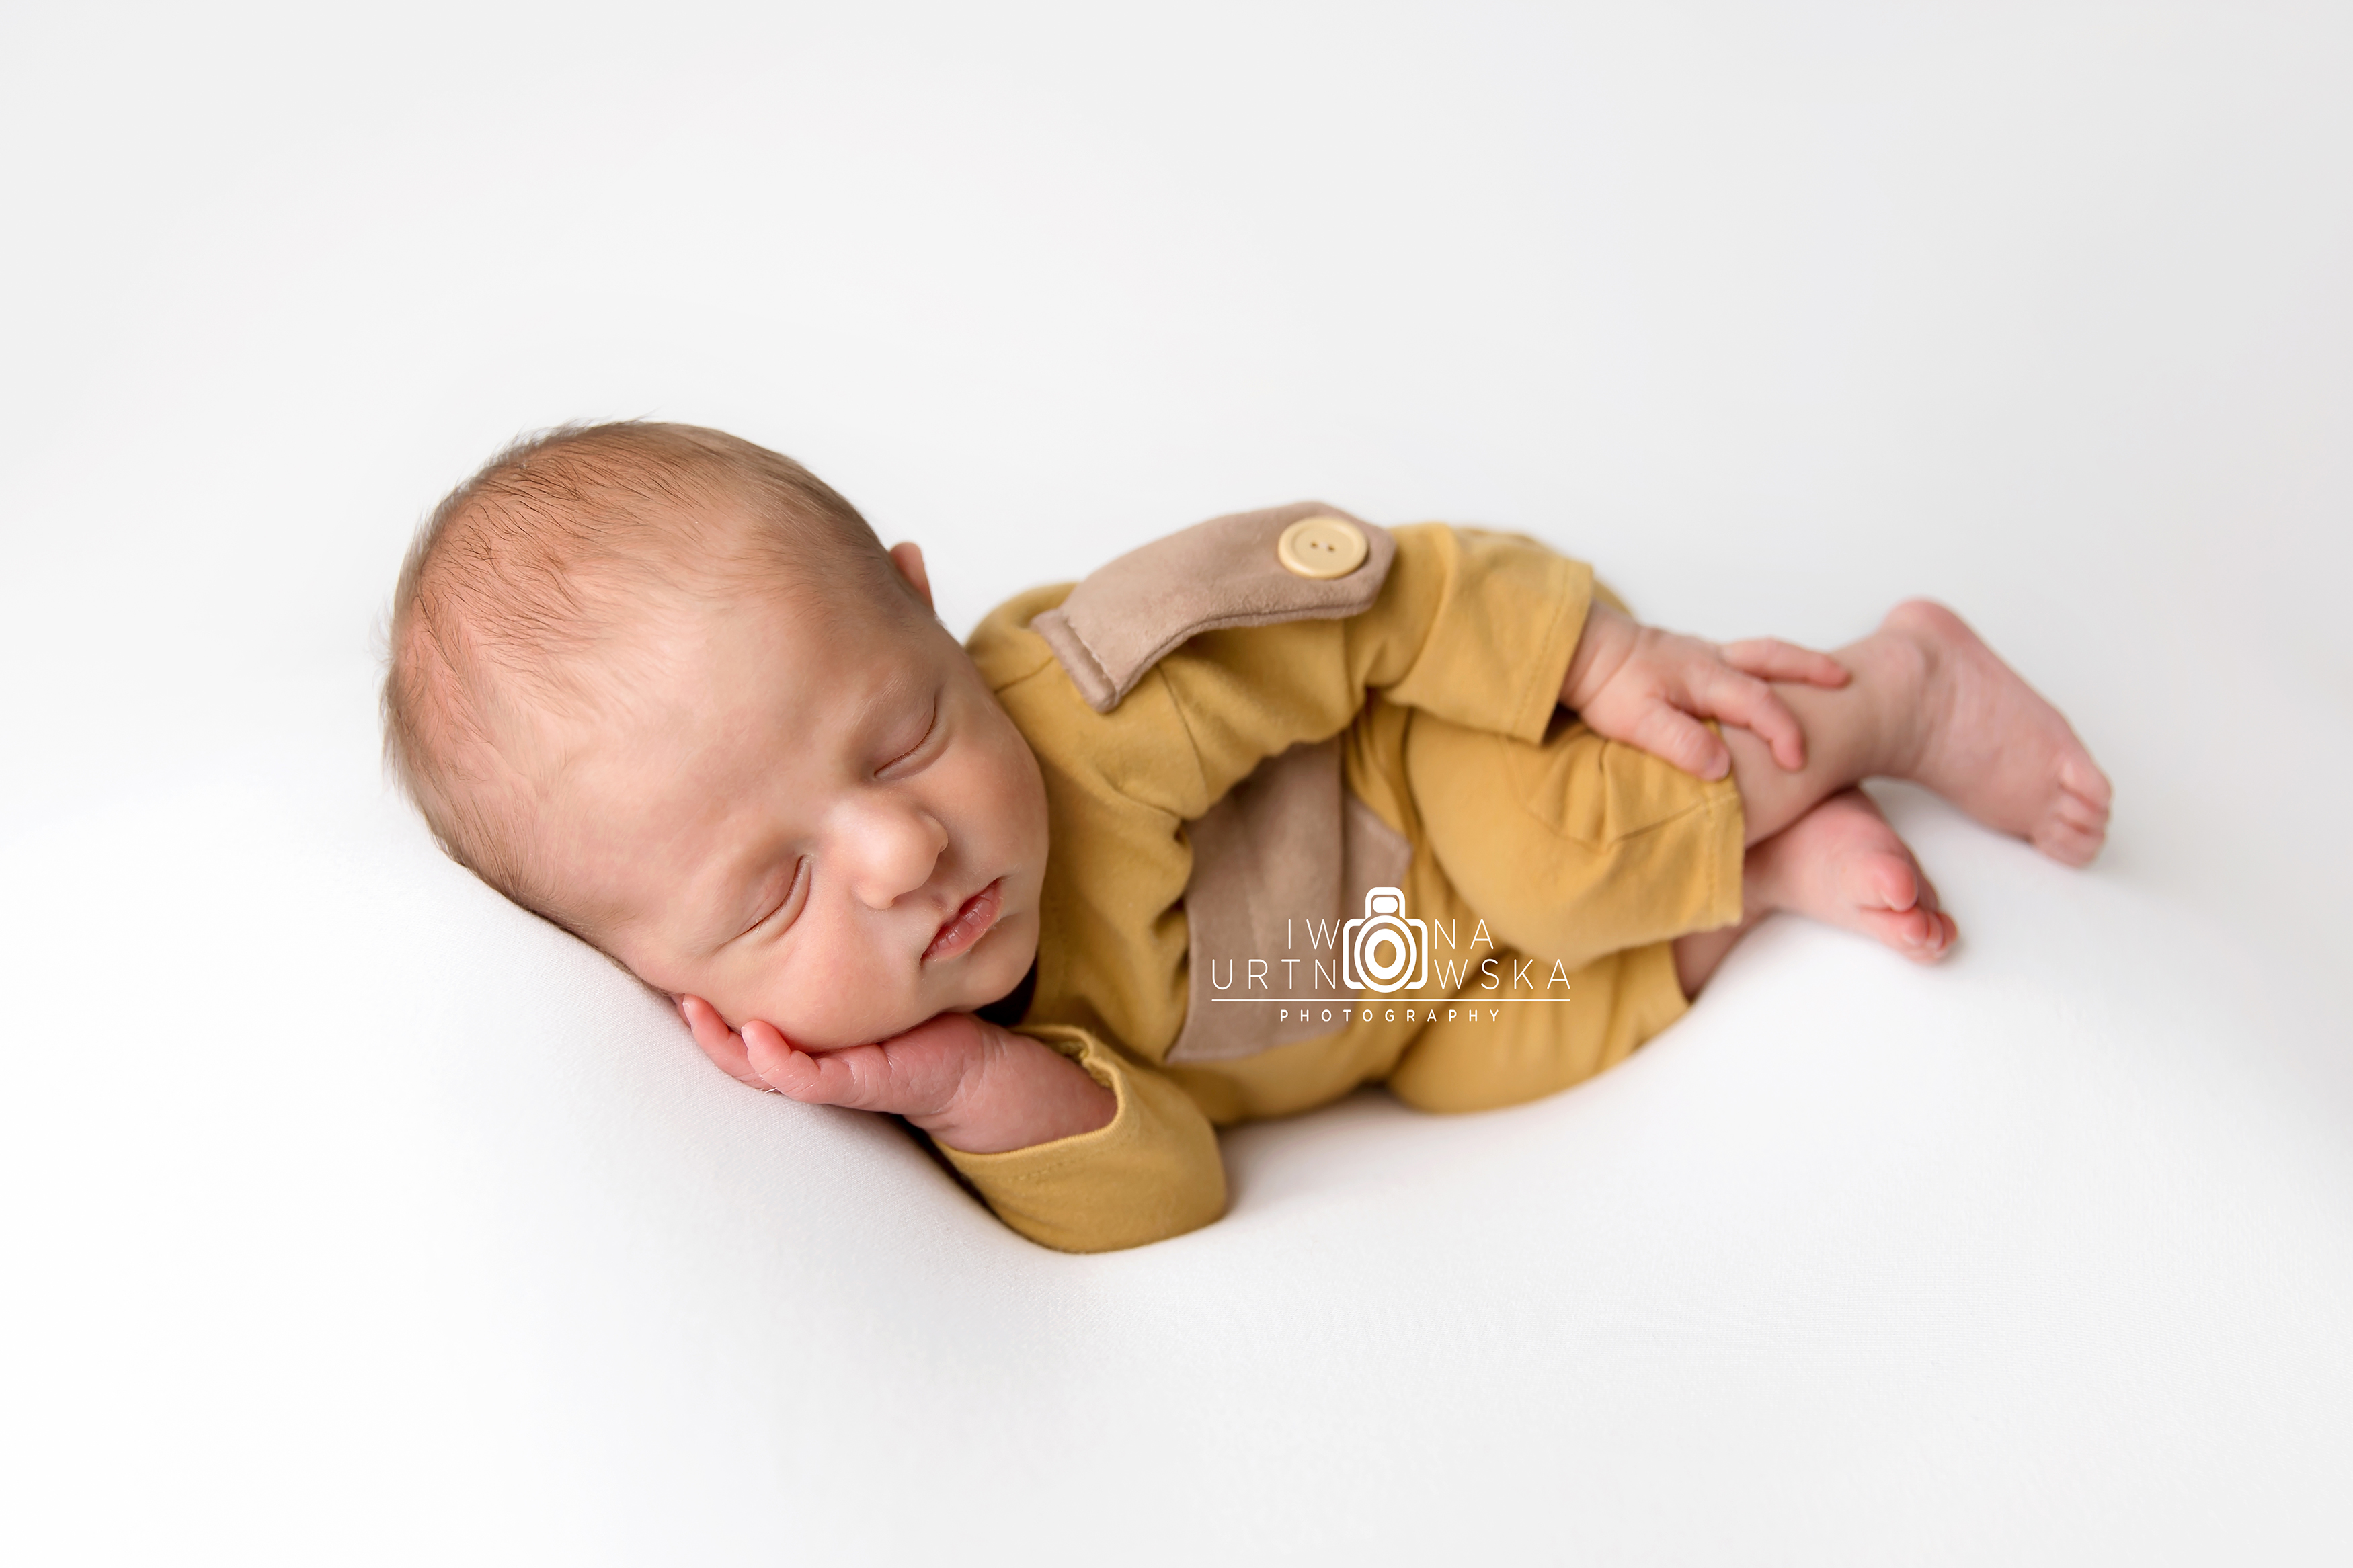 Telford newborn twin photo session